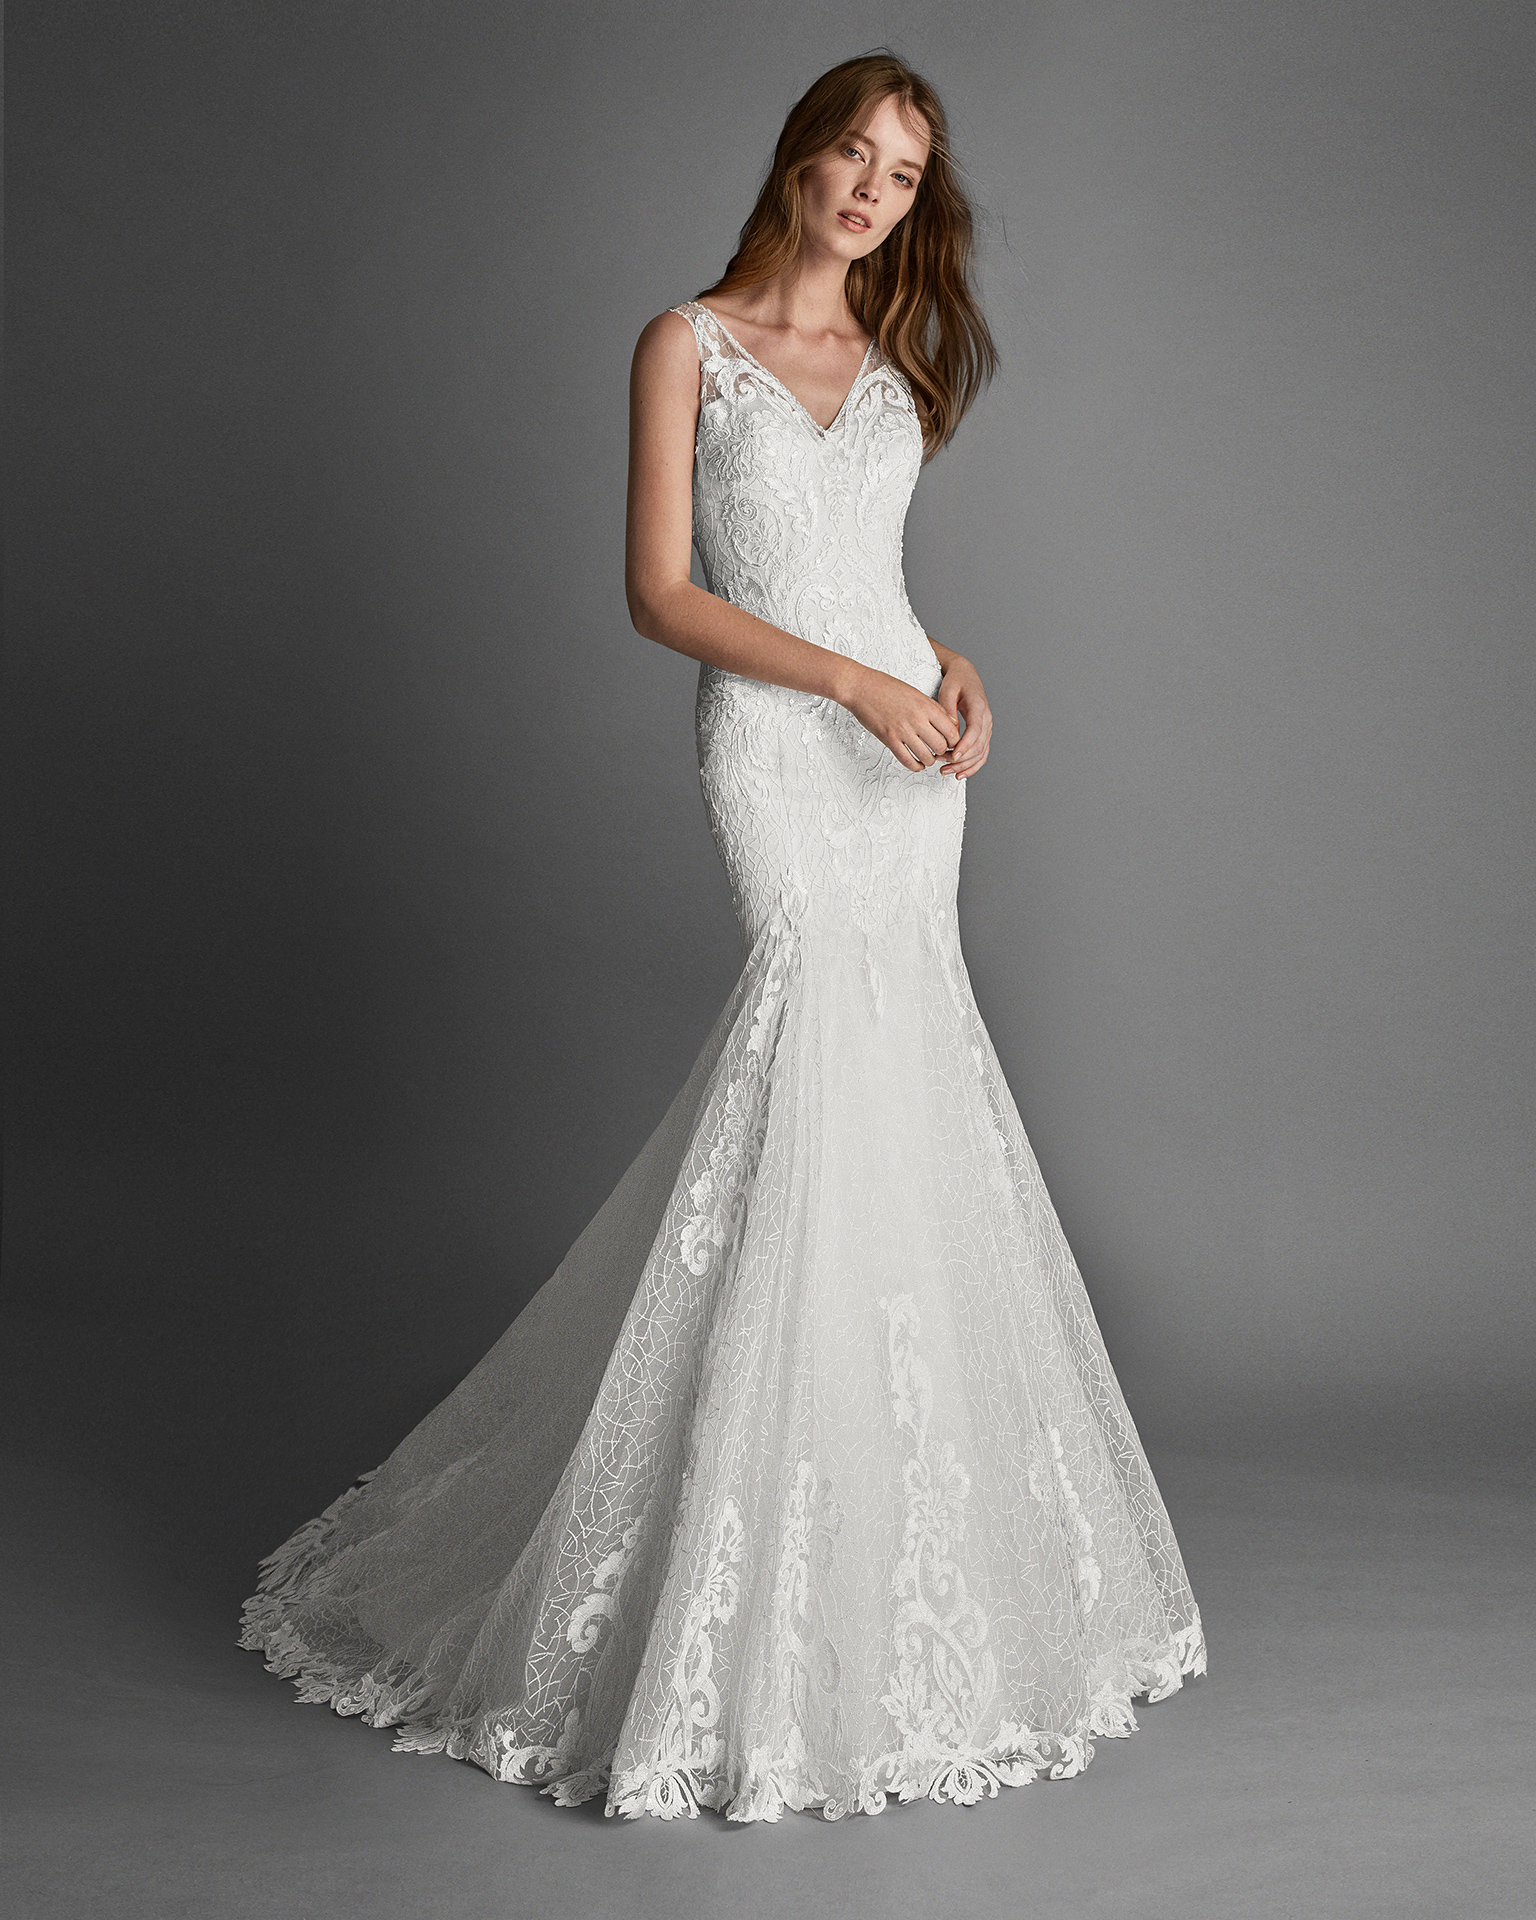 Mermaid-style beaded lace wedding dress with lace back.